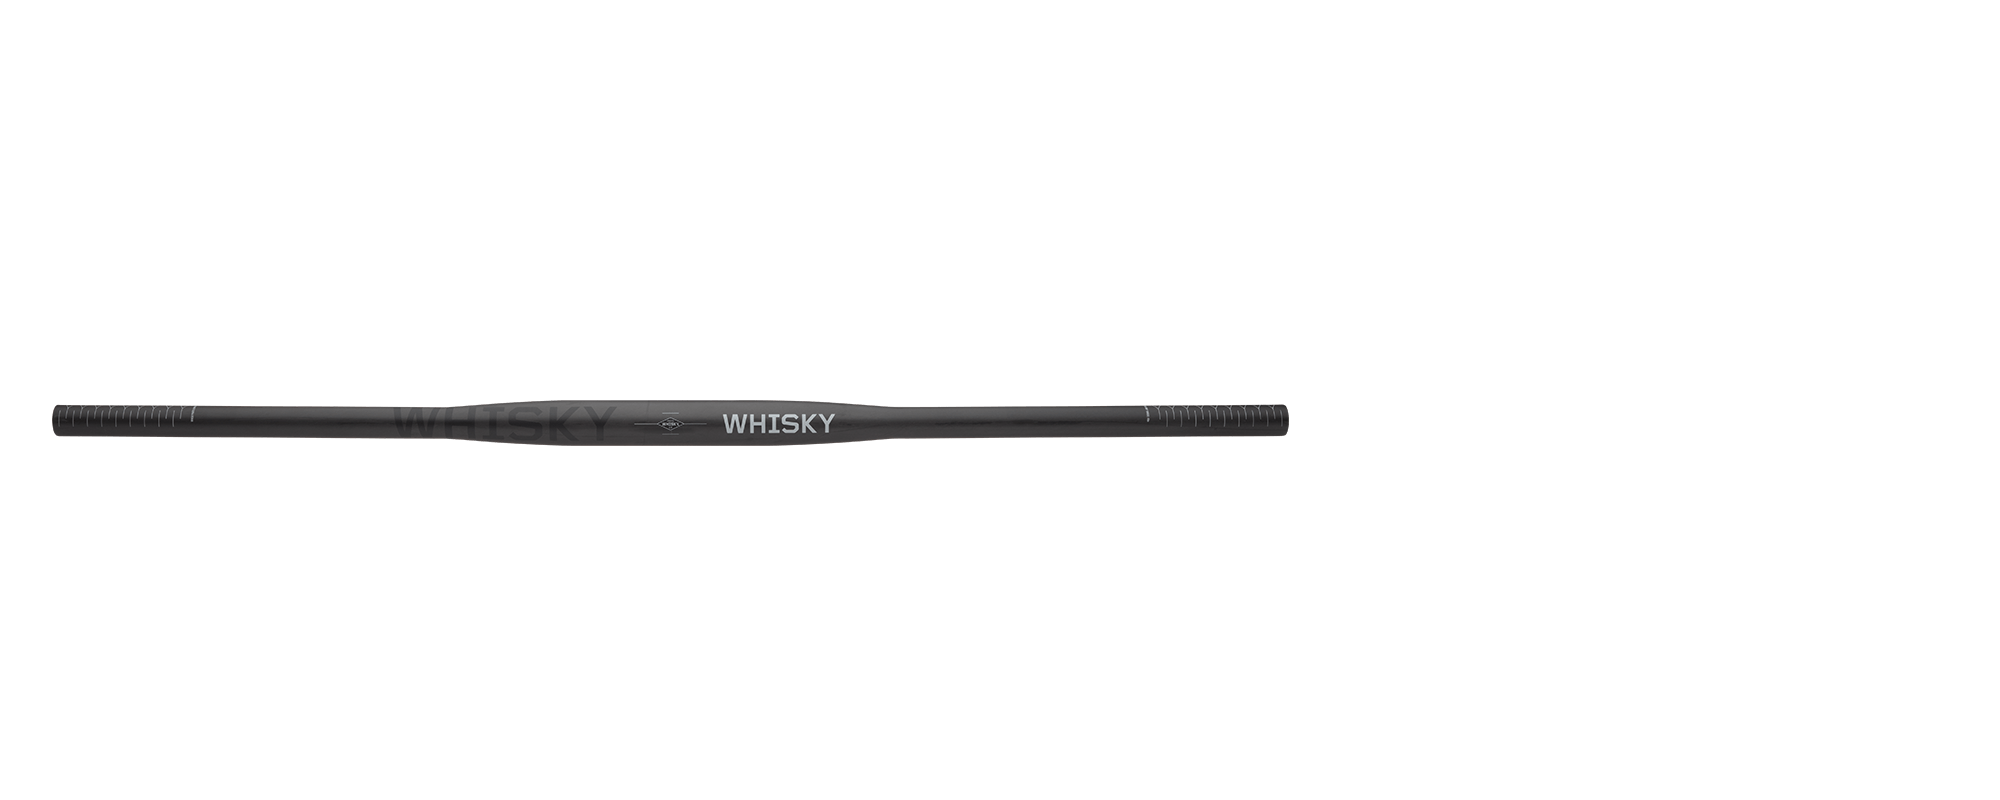 Whisky Flat Bar Handlebar 31.8